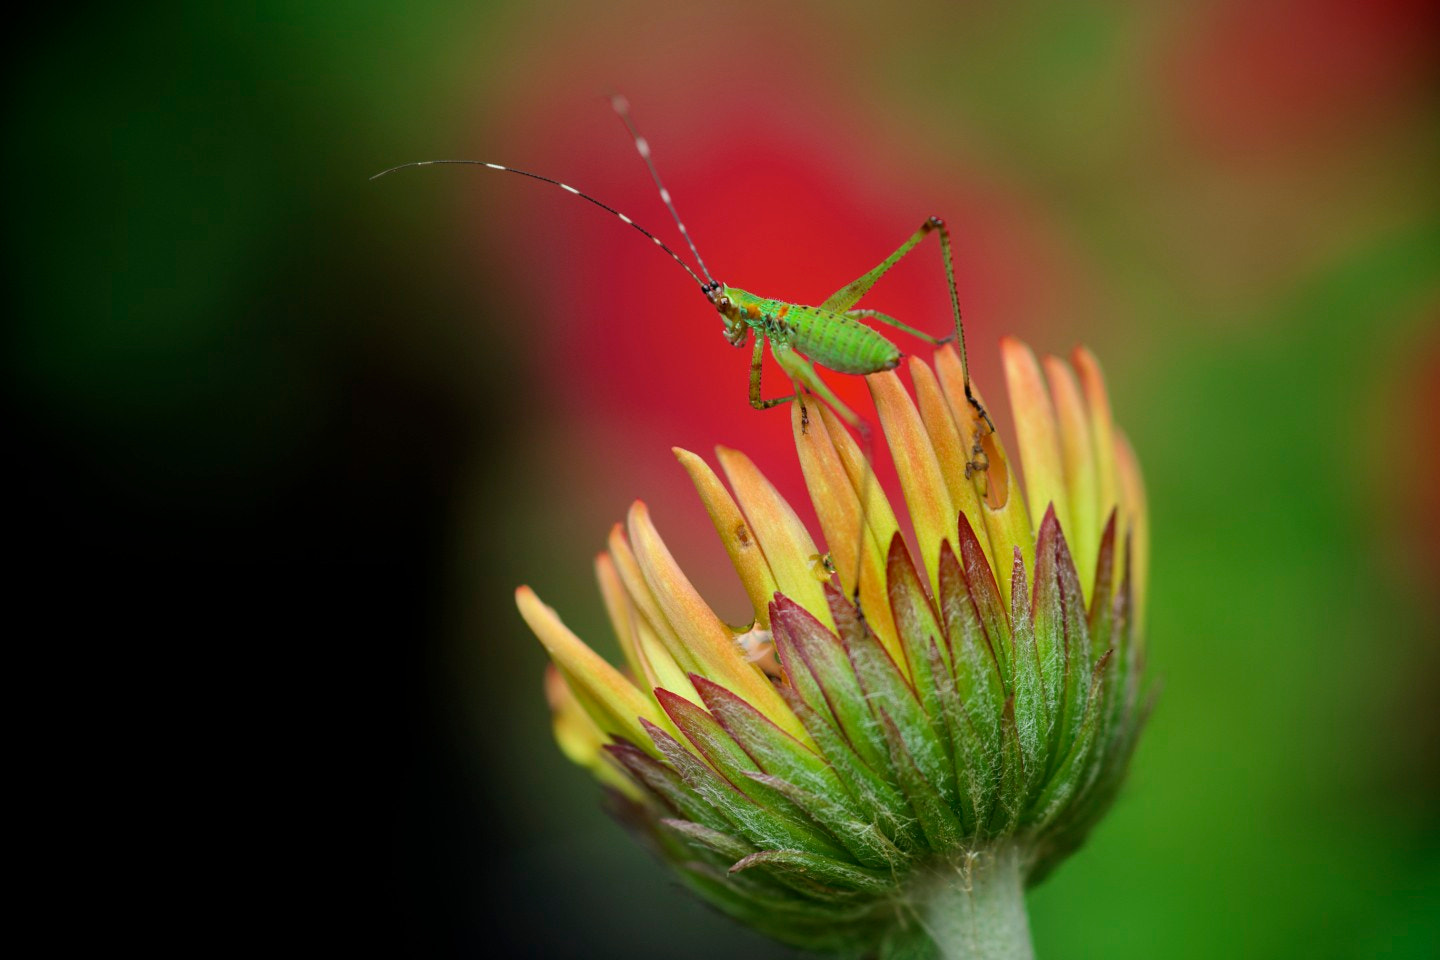 Photograph Katydid by Allen-a99 on 500px